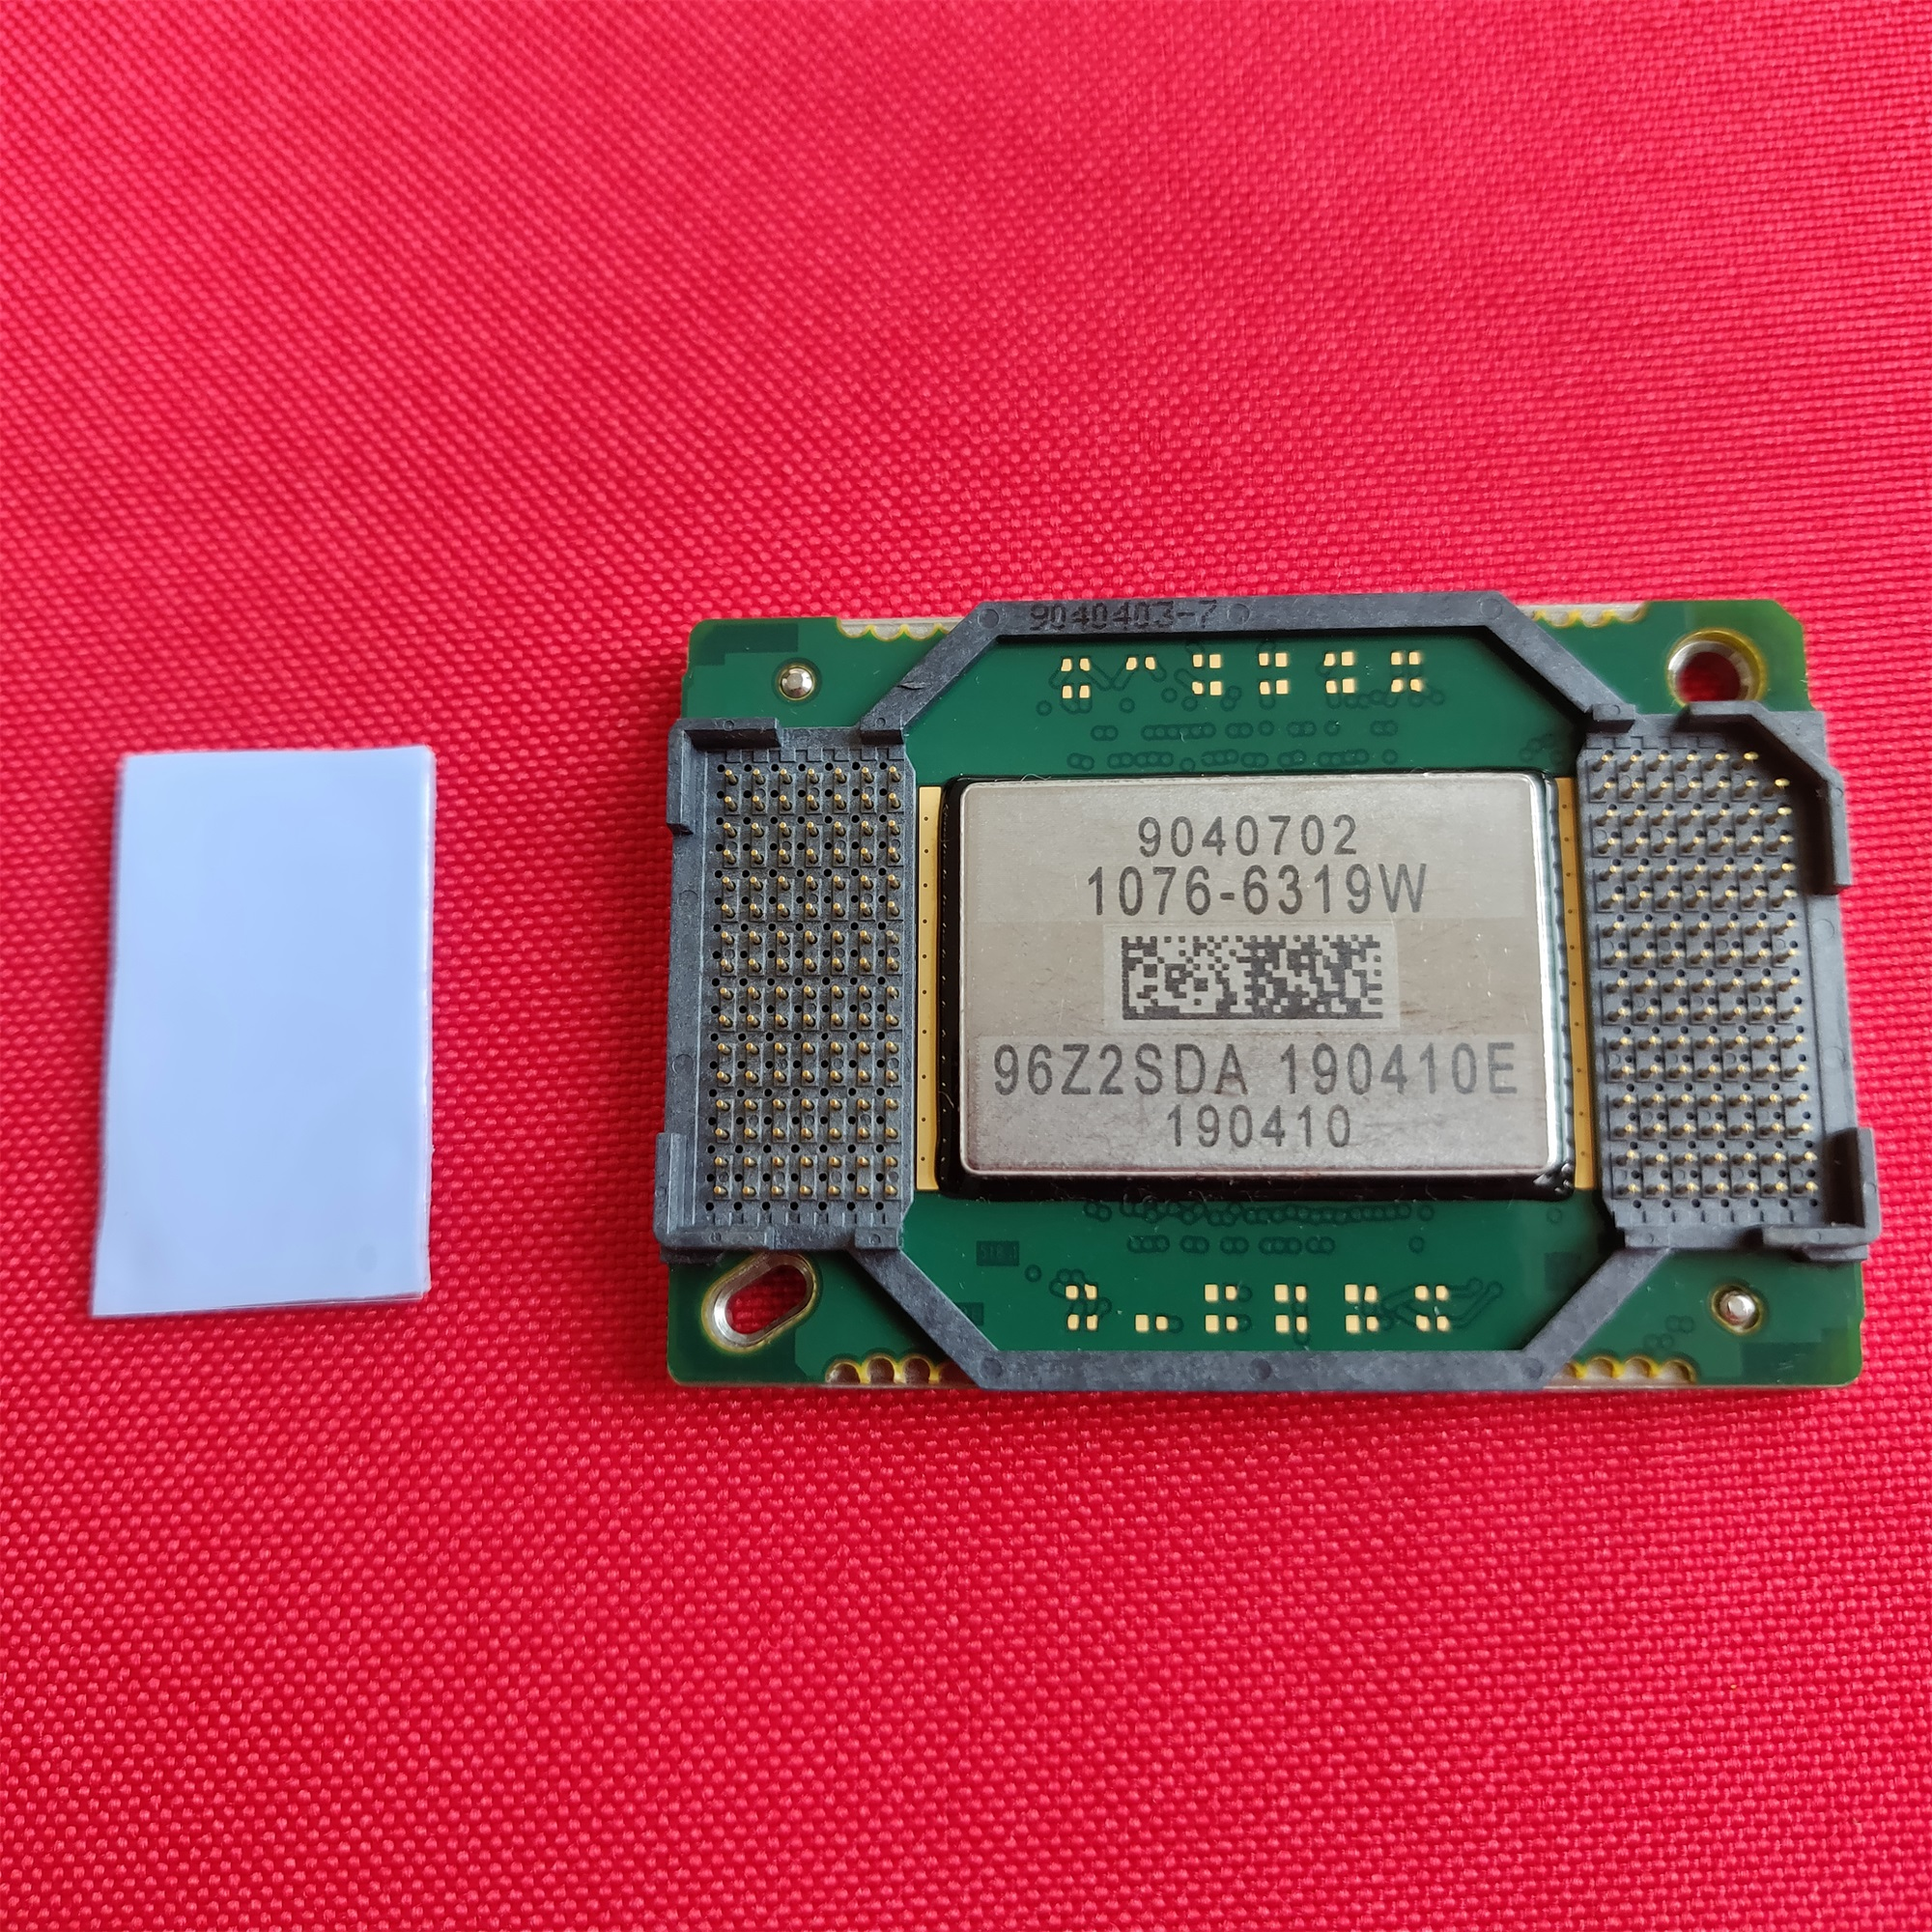 1076-6319W 1076-6318W 1076-6328W 1076-6329W 1076-632AW 1076-631AW Big DMD Chip For Projectors/projection Same Use